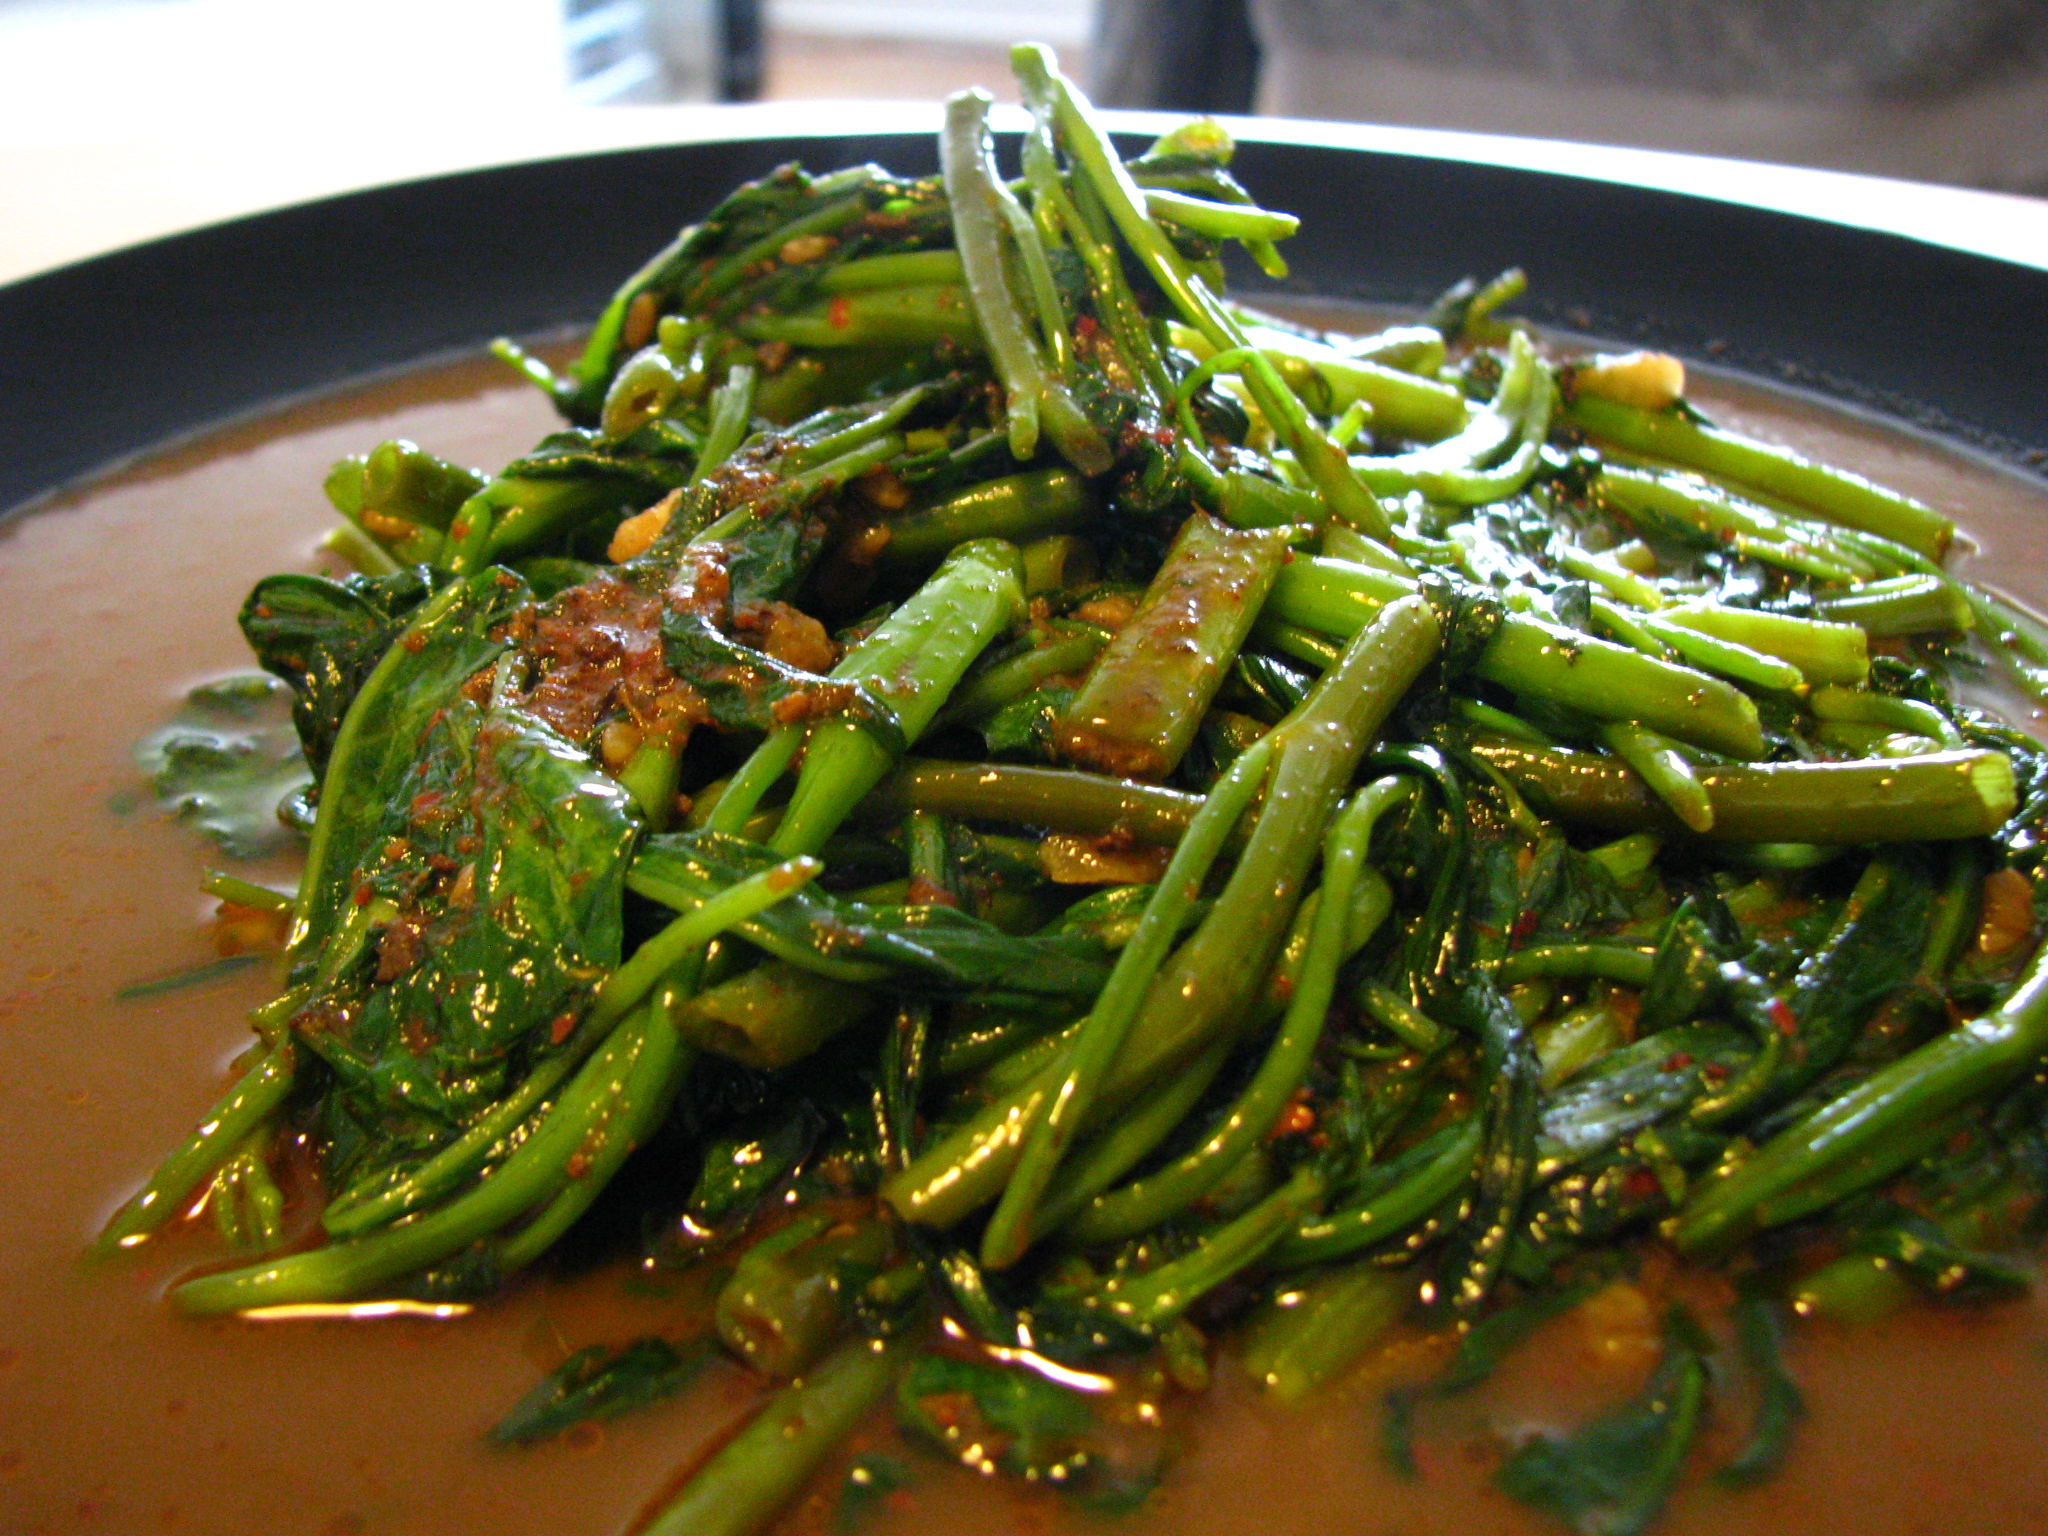 Stir-fried belachan kangkong